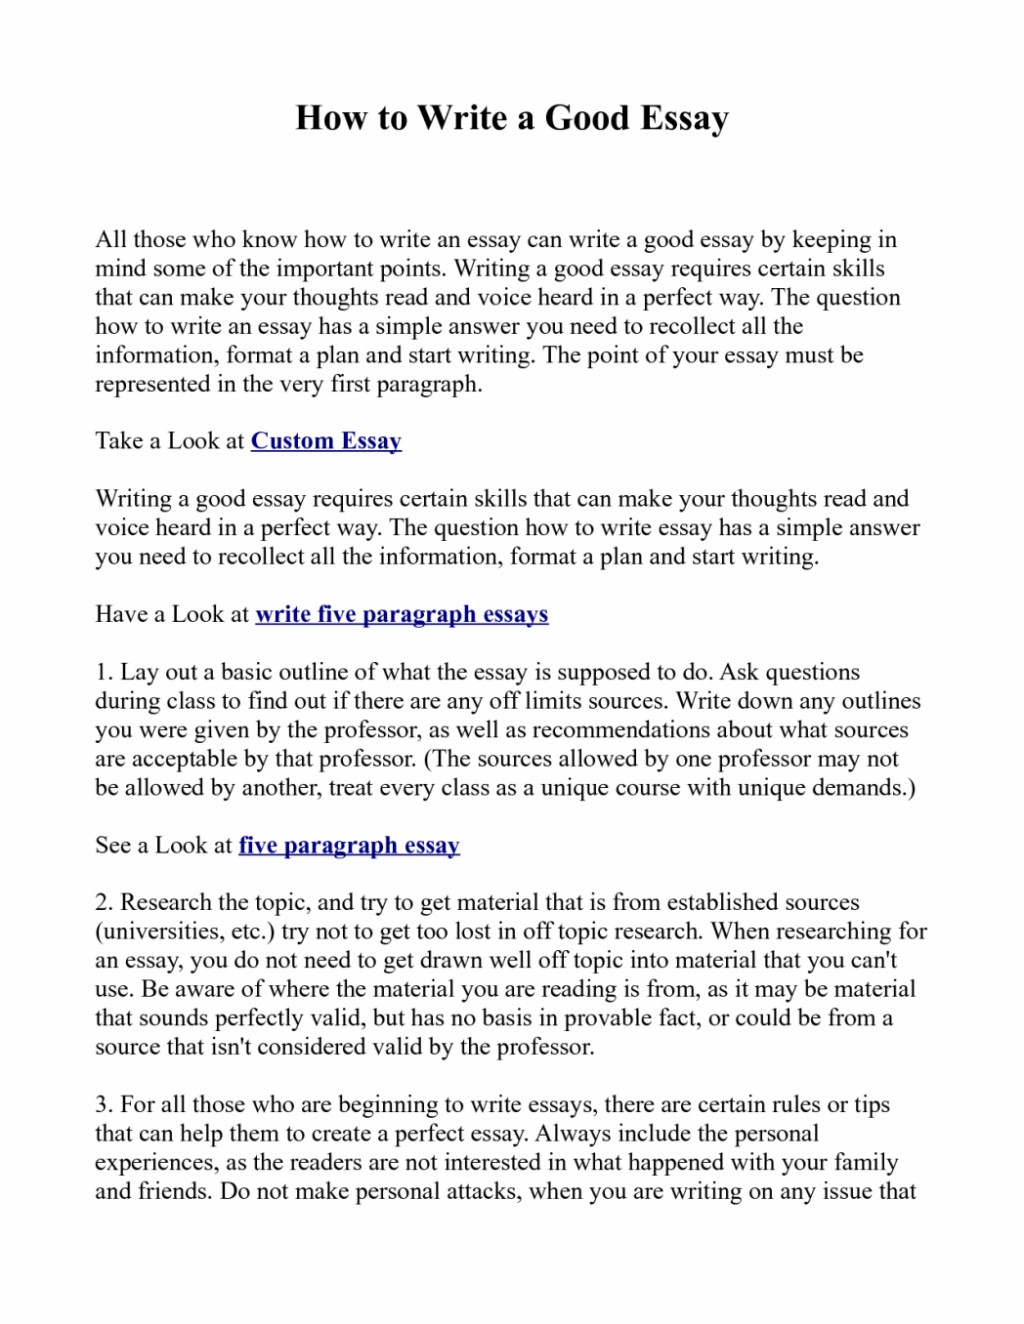 008 Writing Good College Essaysow To Write An Excellent Essay The Start Application Ex1id About Yourself Scholarshipook Examples Prompt With Quote Your Background Failure 1048x1356 Example Singular How Do You Autobiography For Introduction Large